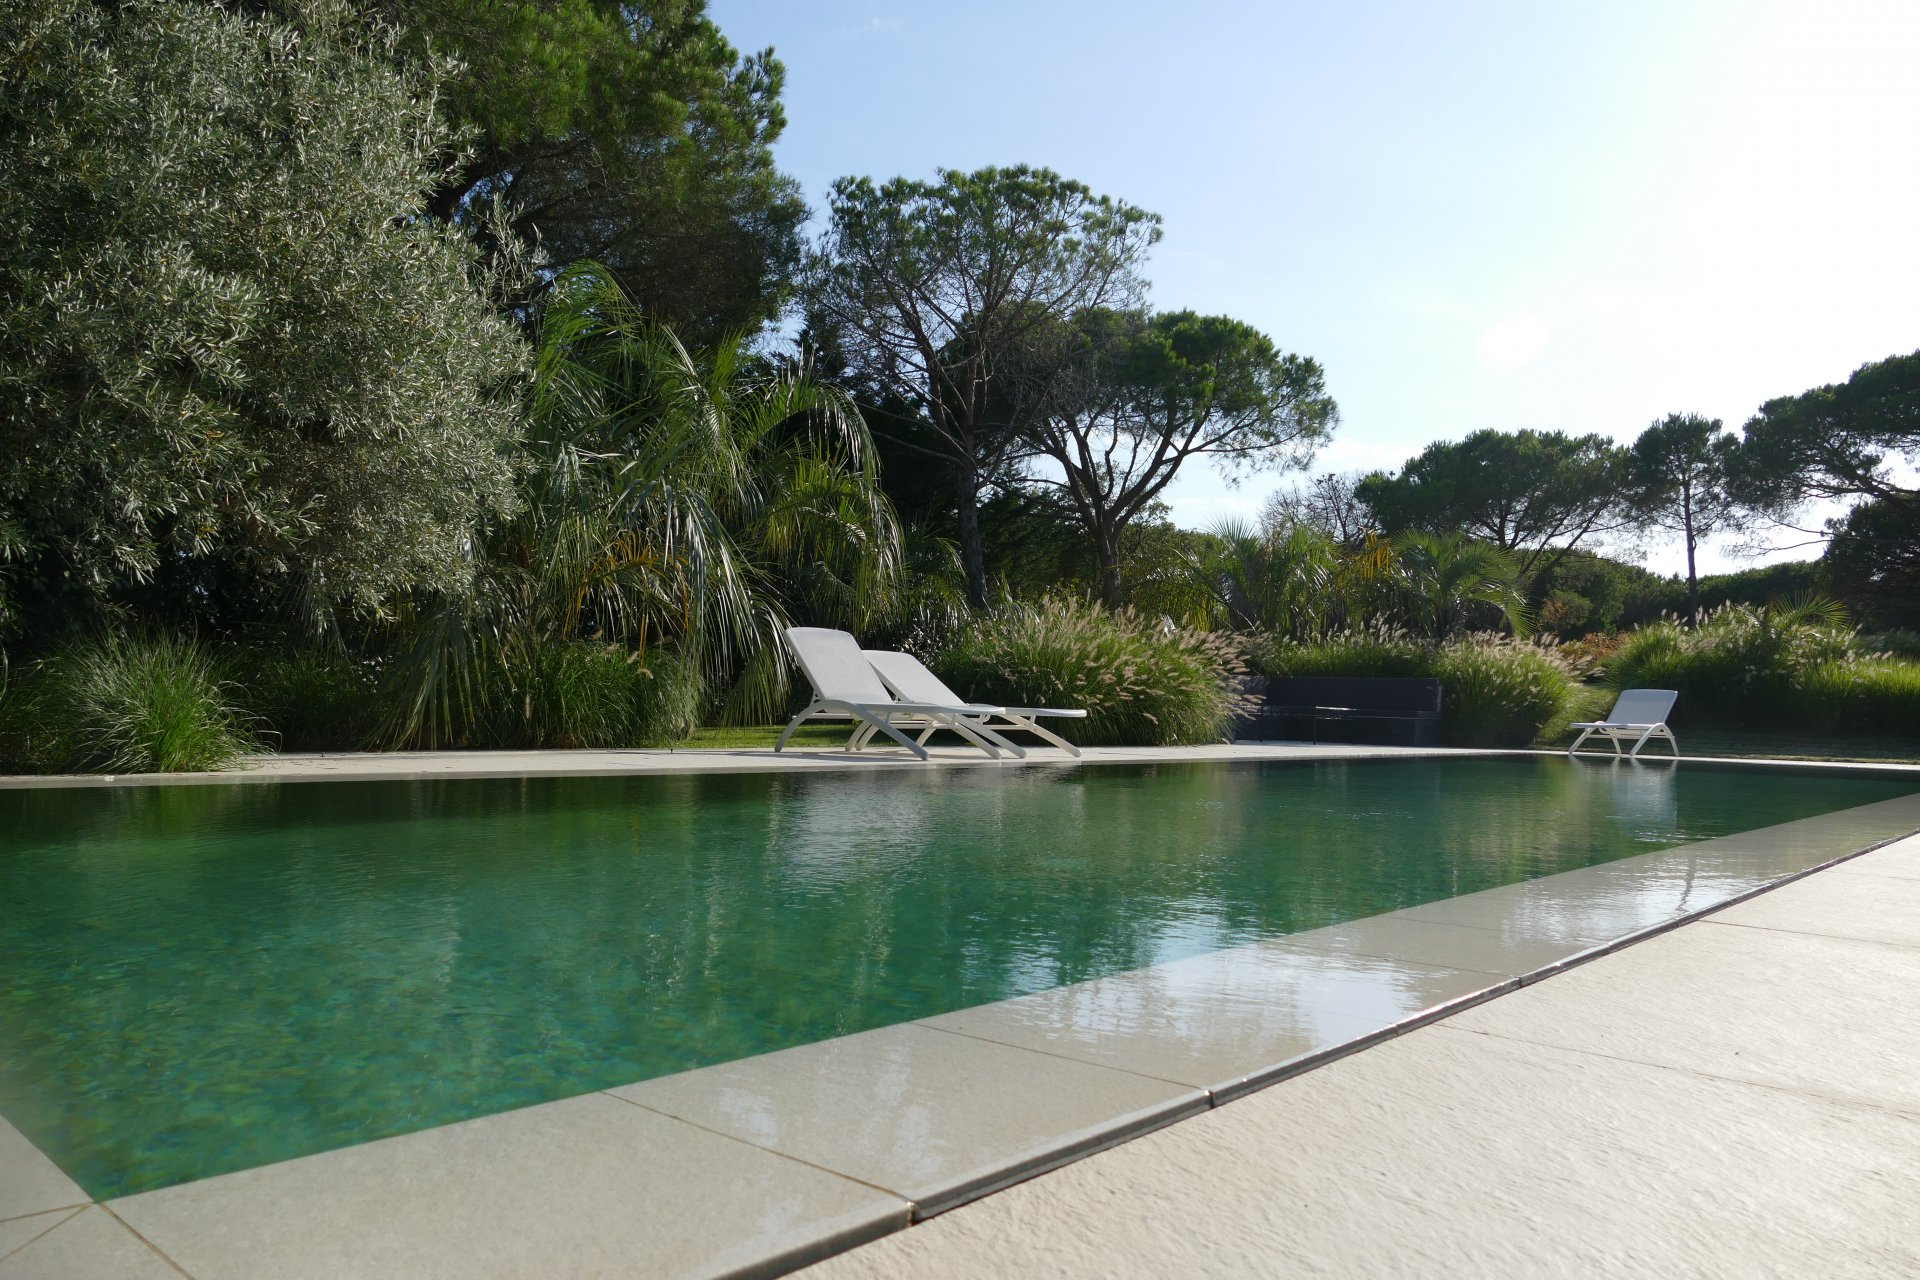 Sea side contemporary house Ramatuelle Pampelonne Var Provence